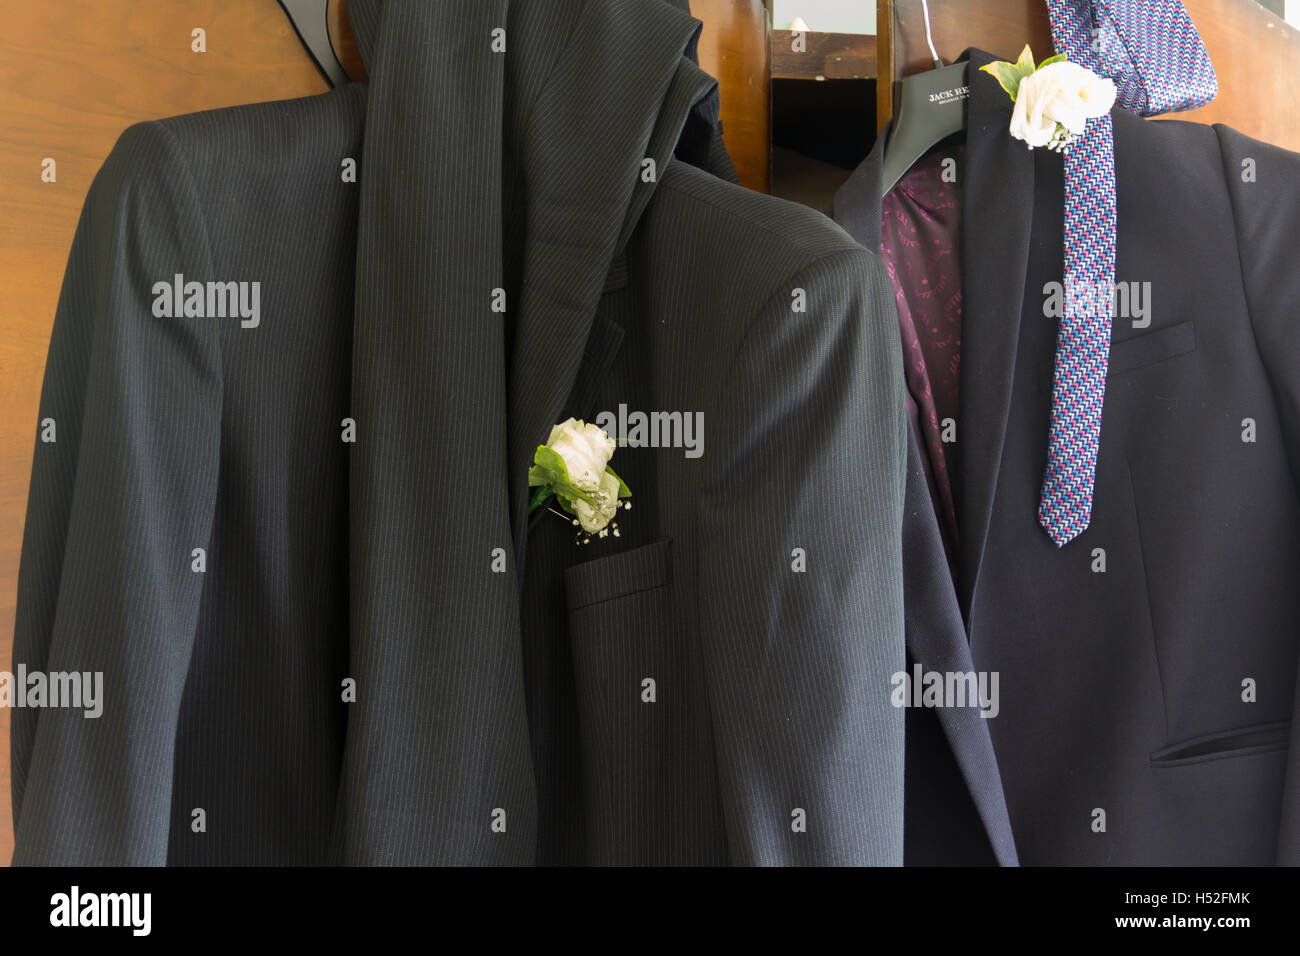 Two men's suits, worn by wedding guests, with white carnation buttonholes hung carelessly on a wardrobe door - Stock Image